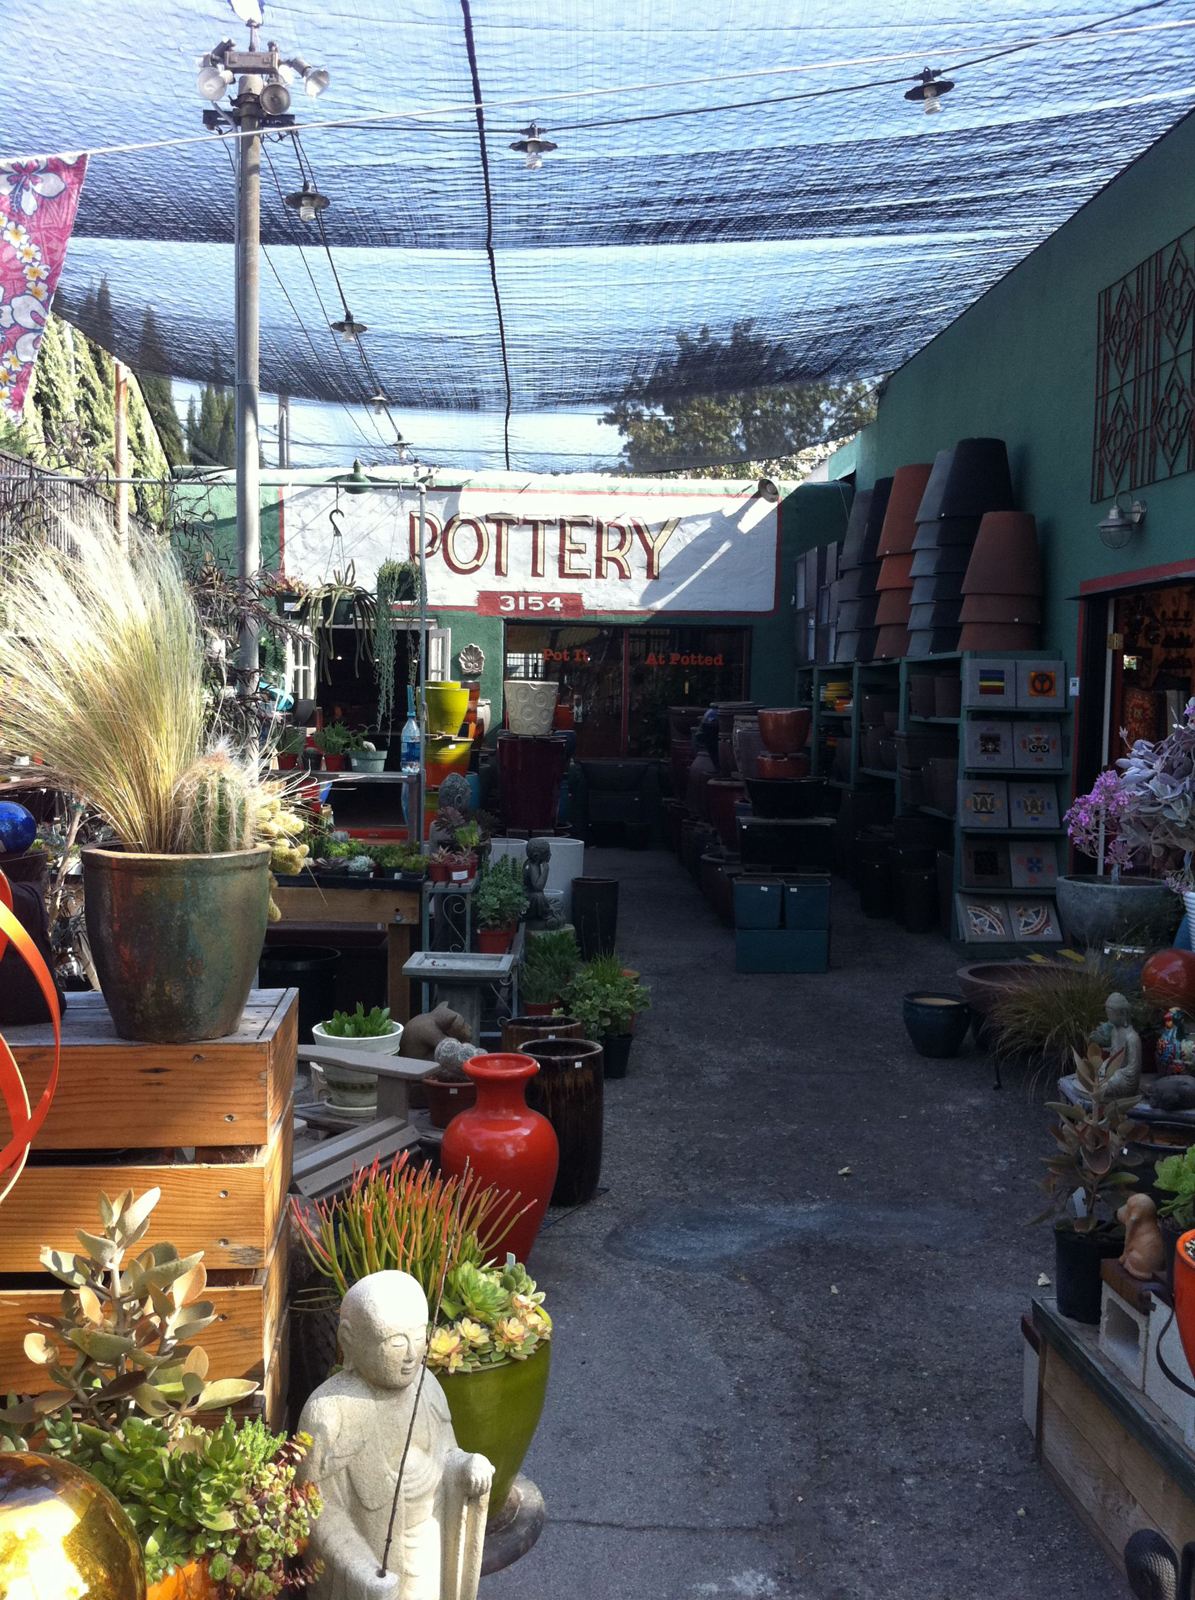 We went to Sunset Nursery, just down Sunset Blvd from us, to pick up some flats and get some new soil for our project.